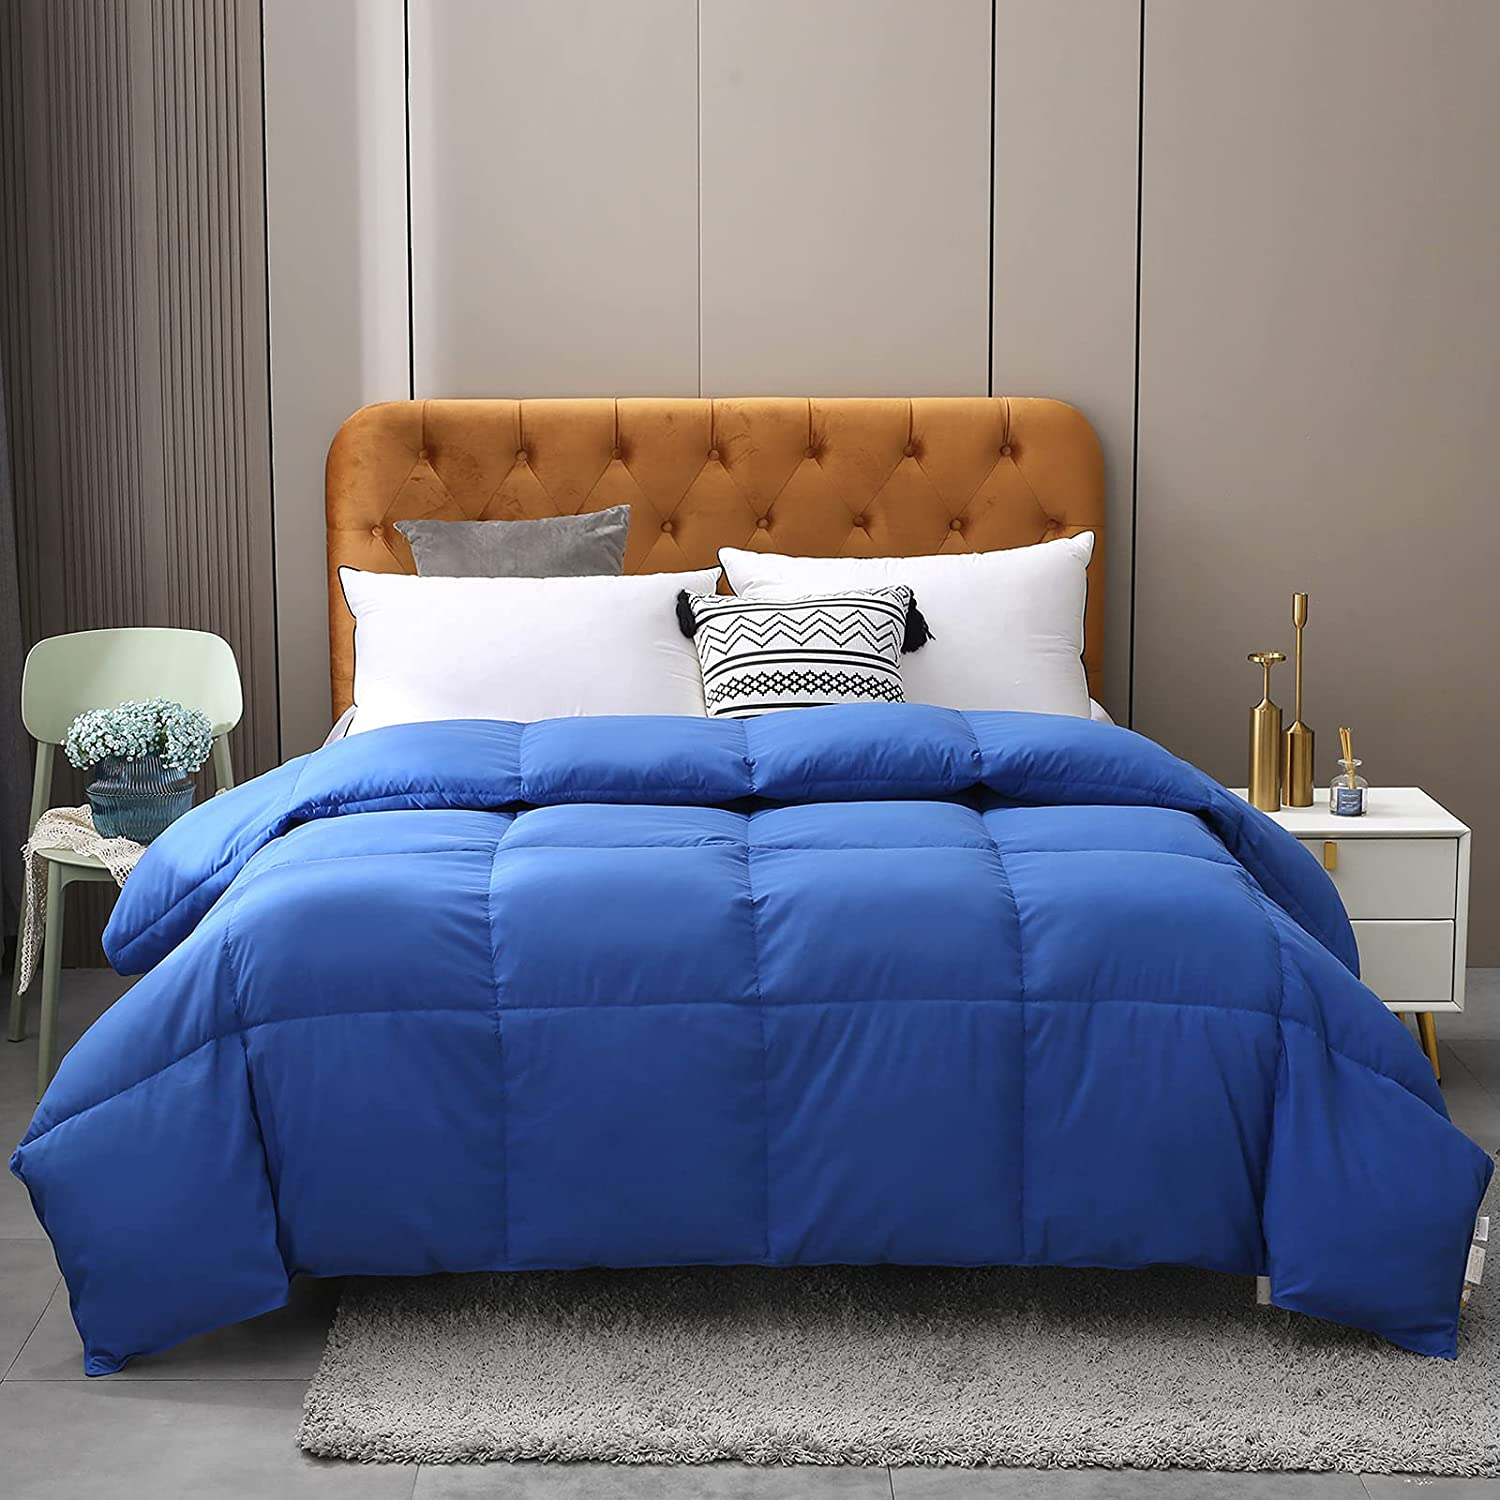 BPC Queen Size Down Comforter - and Goose Regular discount Duck Feather 100% Max 75% OFF